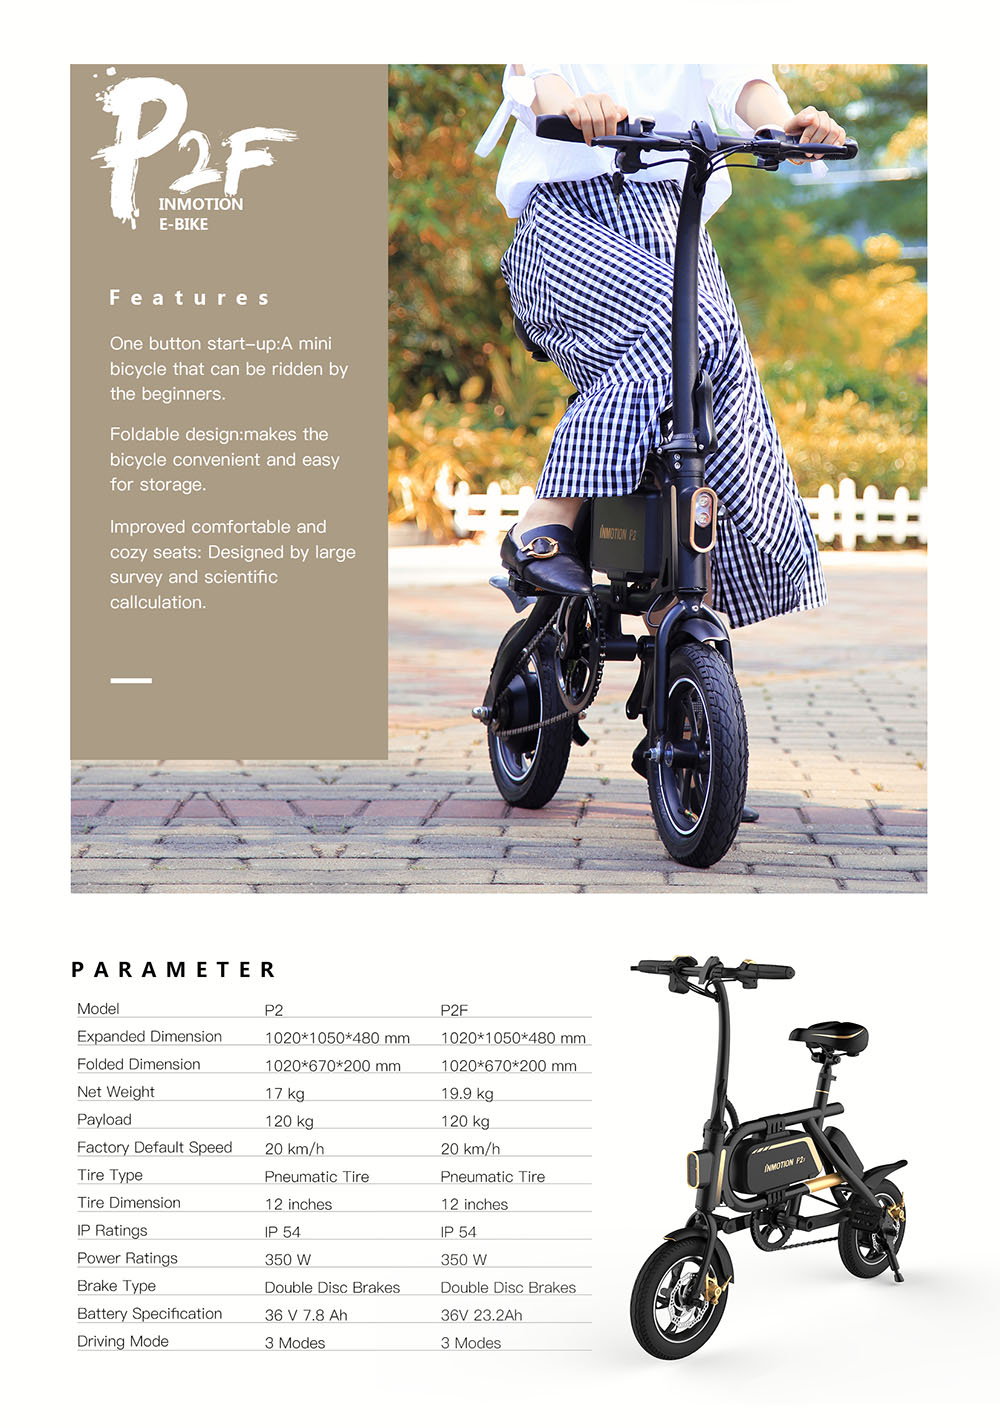 HTB1BOWMKf5TBuNjSspcq6znGFXaz - INMOTION P2F EBIKE Folding Bike Mini Bicycle Electric Scooter Lithium-ion Battery 350W CE RoHS FCC